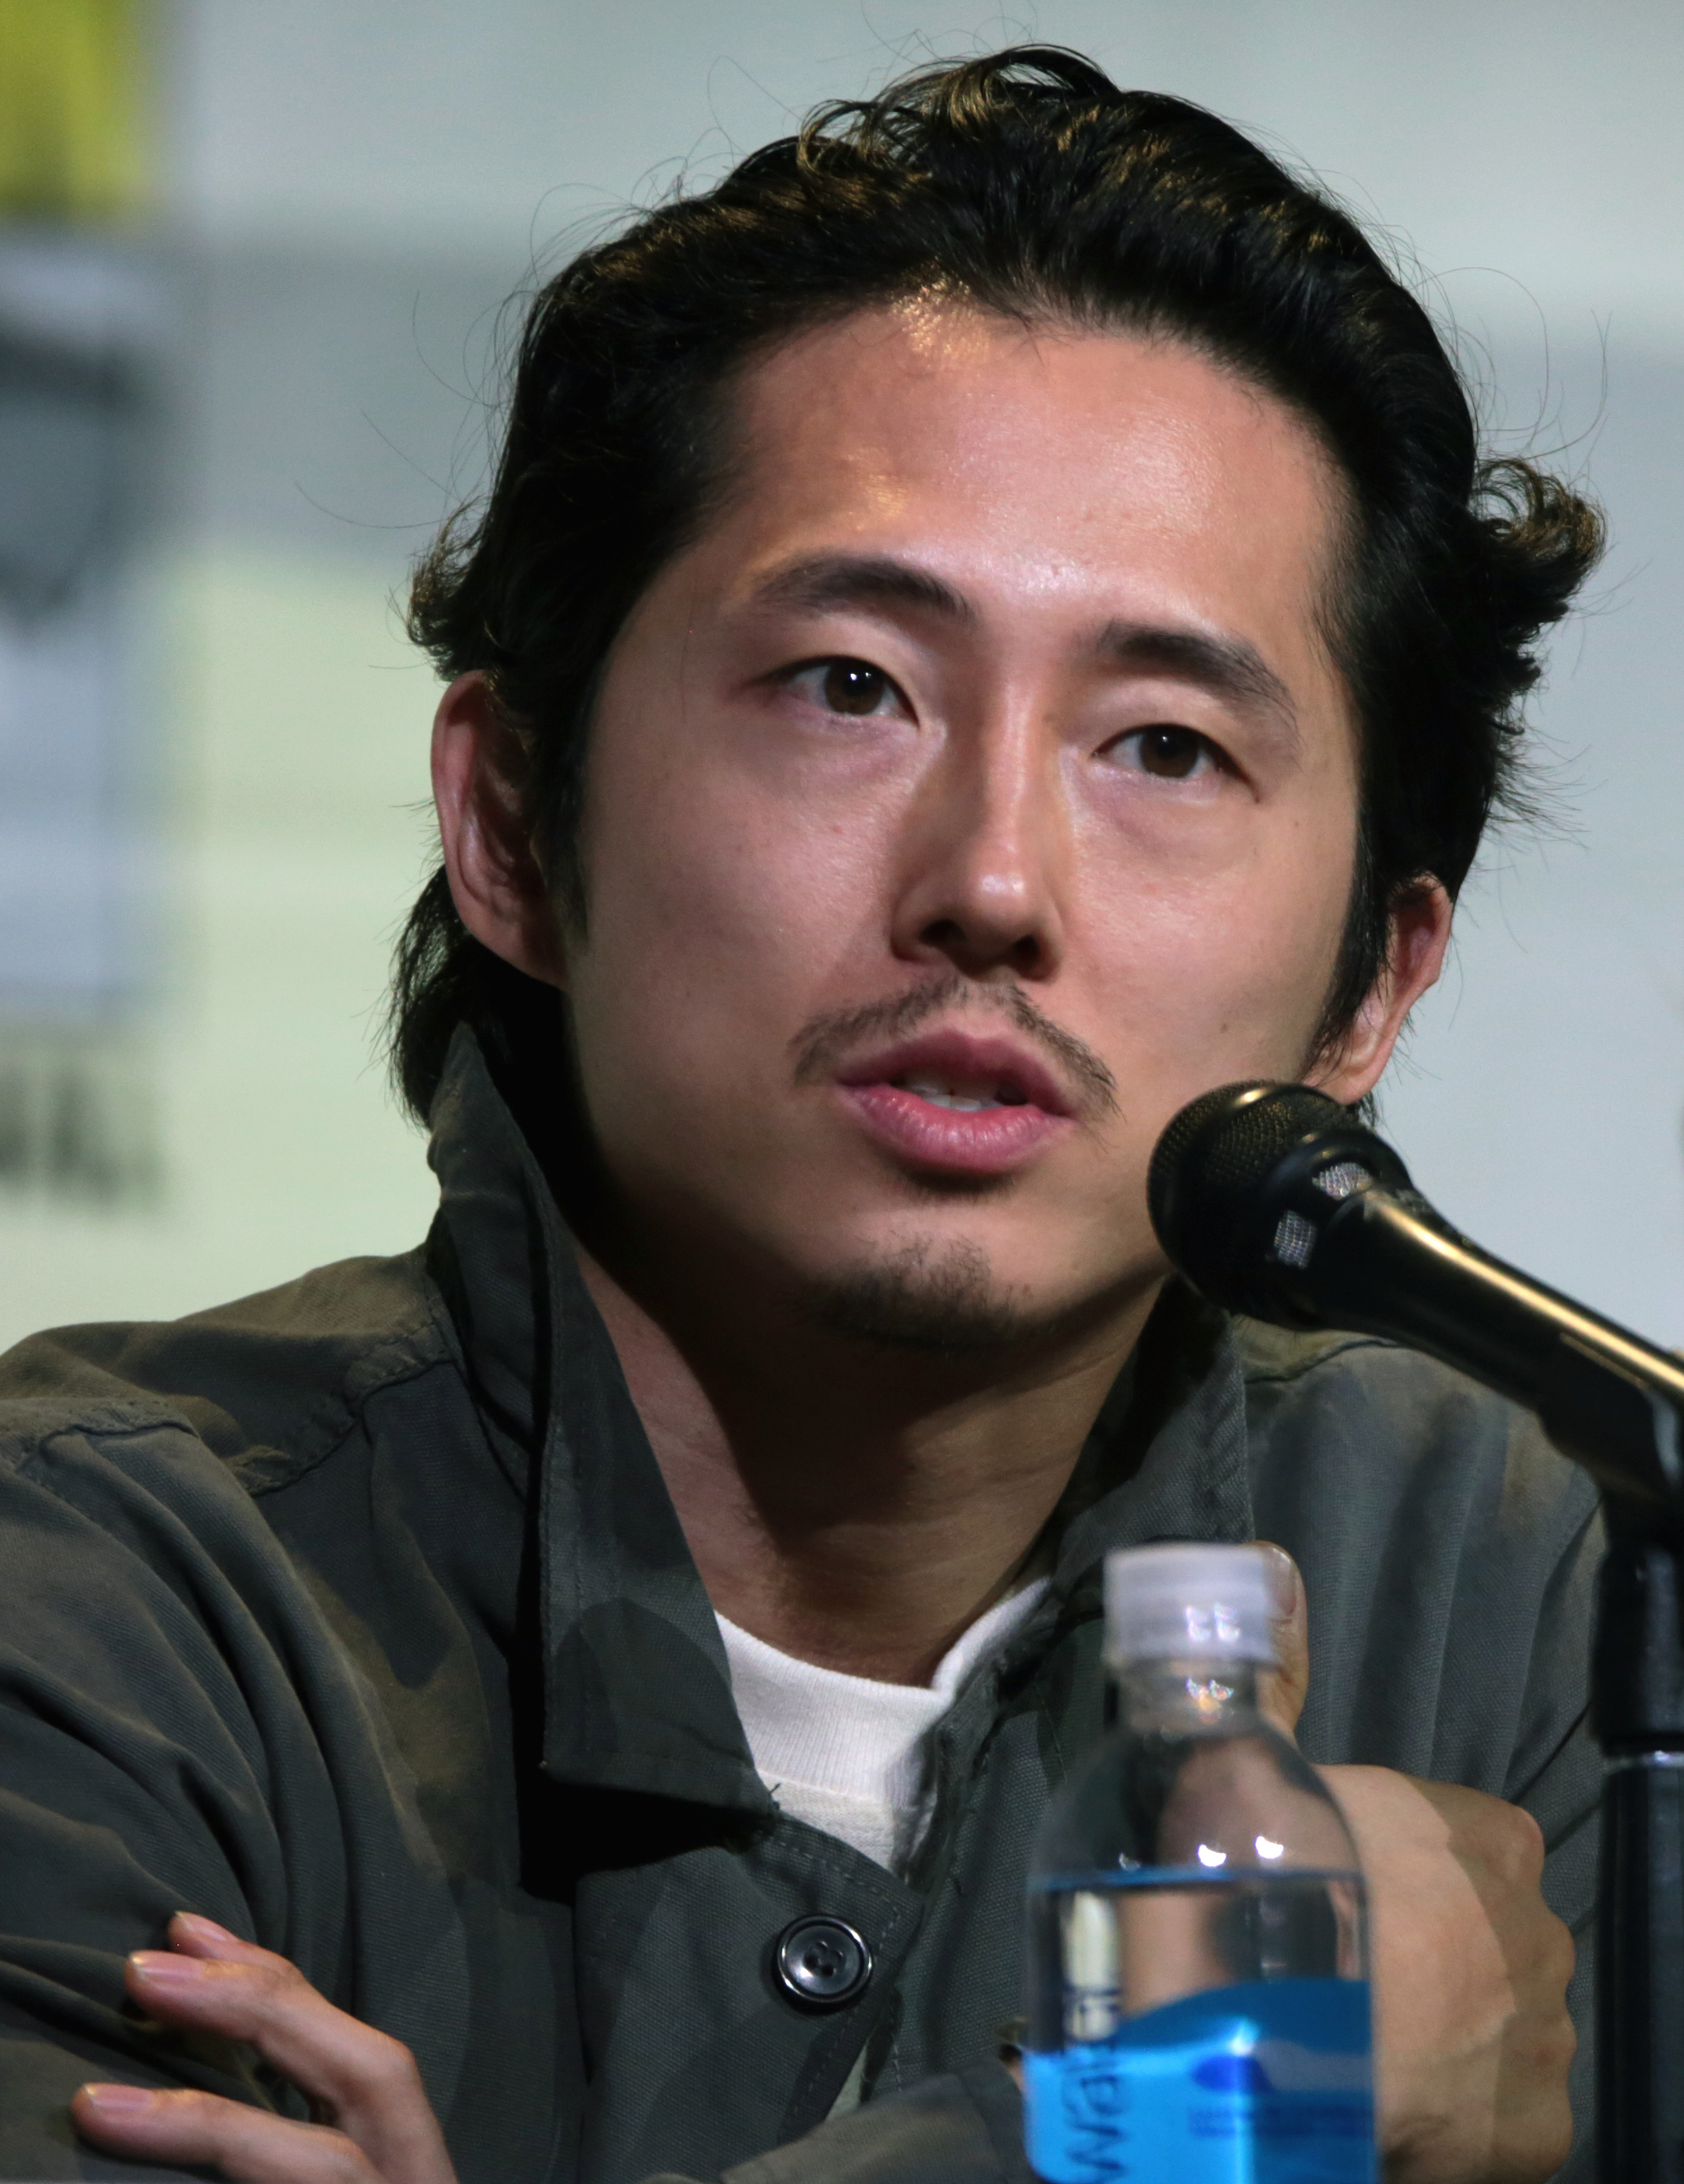 The 34-year old son of father Je Yeun and mother June Yeun Steven Yeun in 2018 photo. Steven Yeun earned a  million dollar salary - leaving the net worth at 1.5 million in 2018